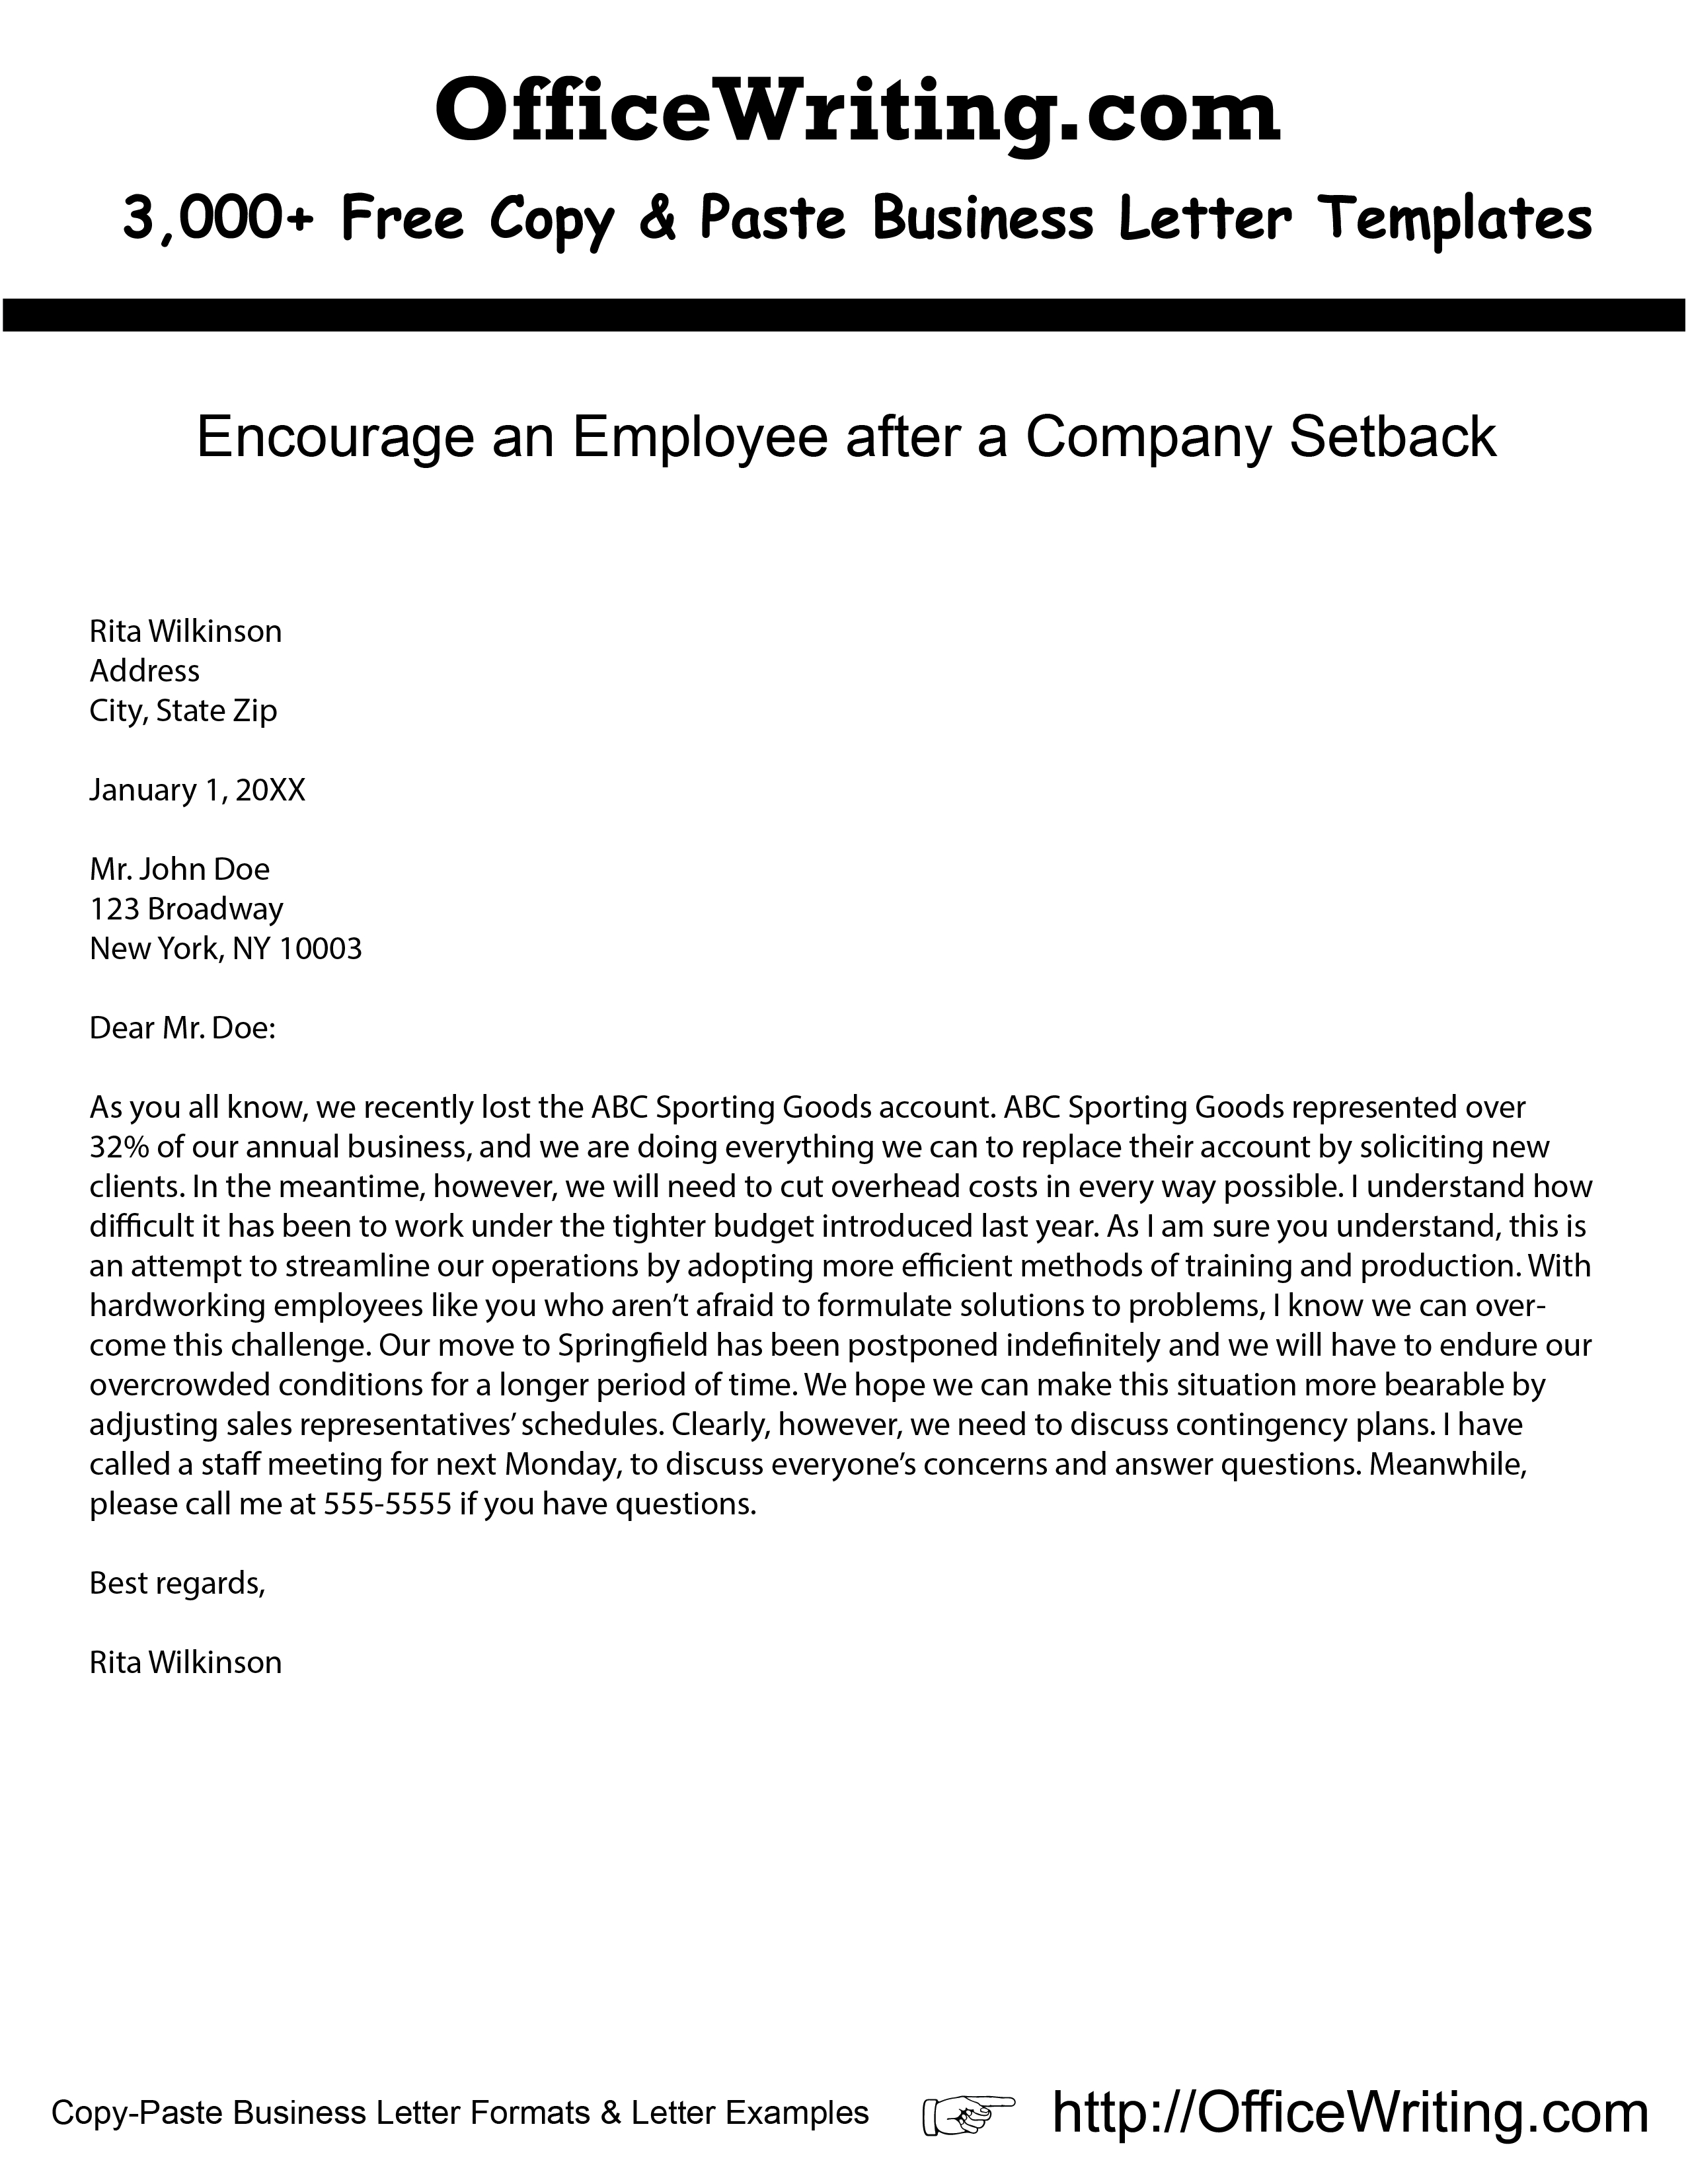 New Hire Letter Template - Encourage An Employee after A Pany Setback Ficewriting